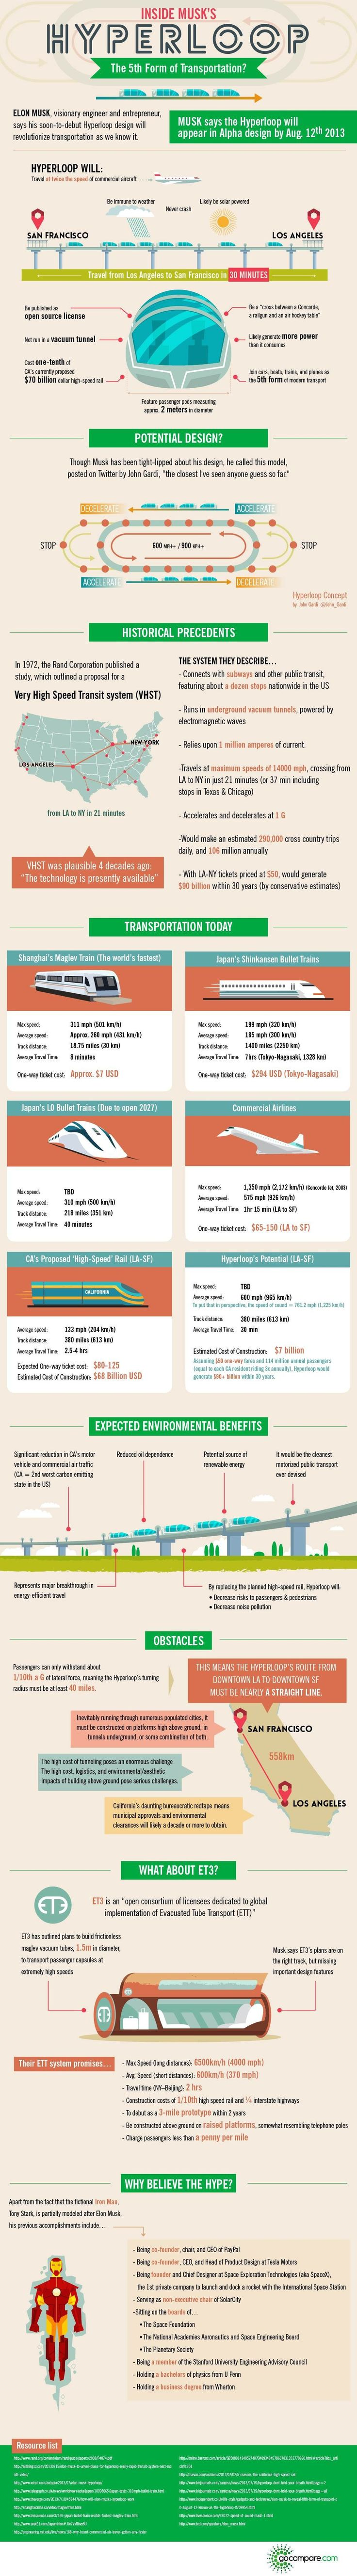 A new infographic illustrates the rumored details about Elon Musk's Hyperloop high-speed transportation system.